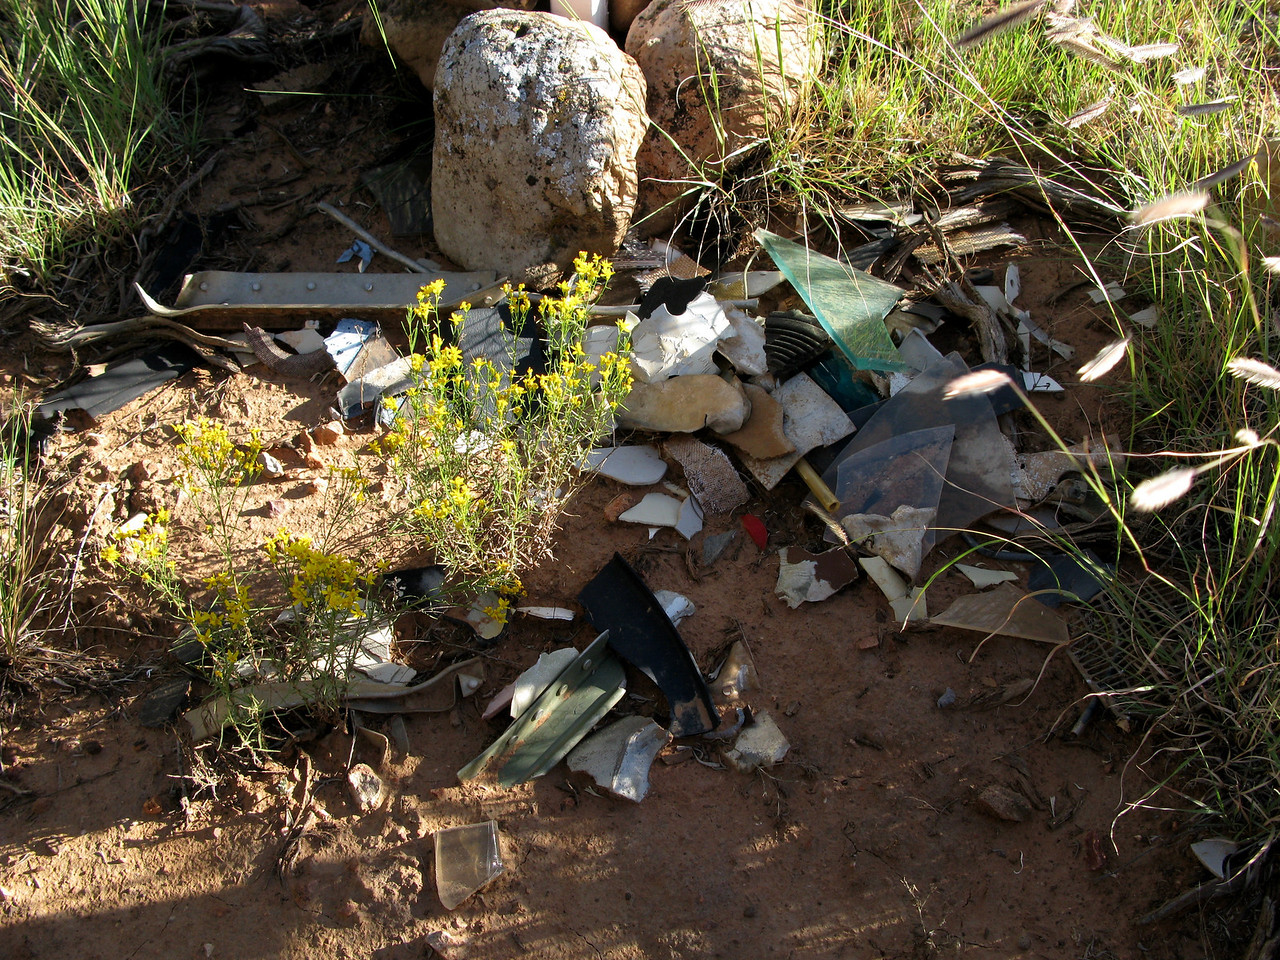 At the base of the crosses is a collection of aircraft wreckage that was gathered by visitors or family members. Some of the debris was not consistent with parts and components from a Cessna 210 and was probably pieces from other accidents that have occurred in the same area.<br /> <br /> An area roughly 50 feet in diameter surrounding the memorial contains additional smaller fragments that may be from the accident aircraft.